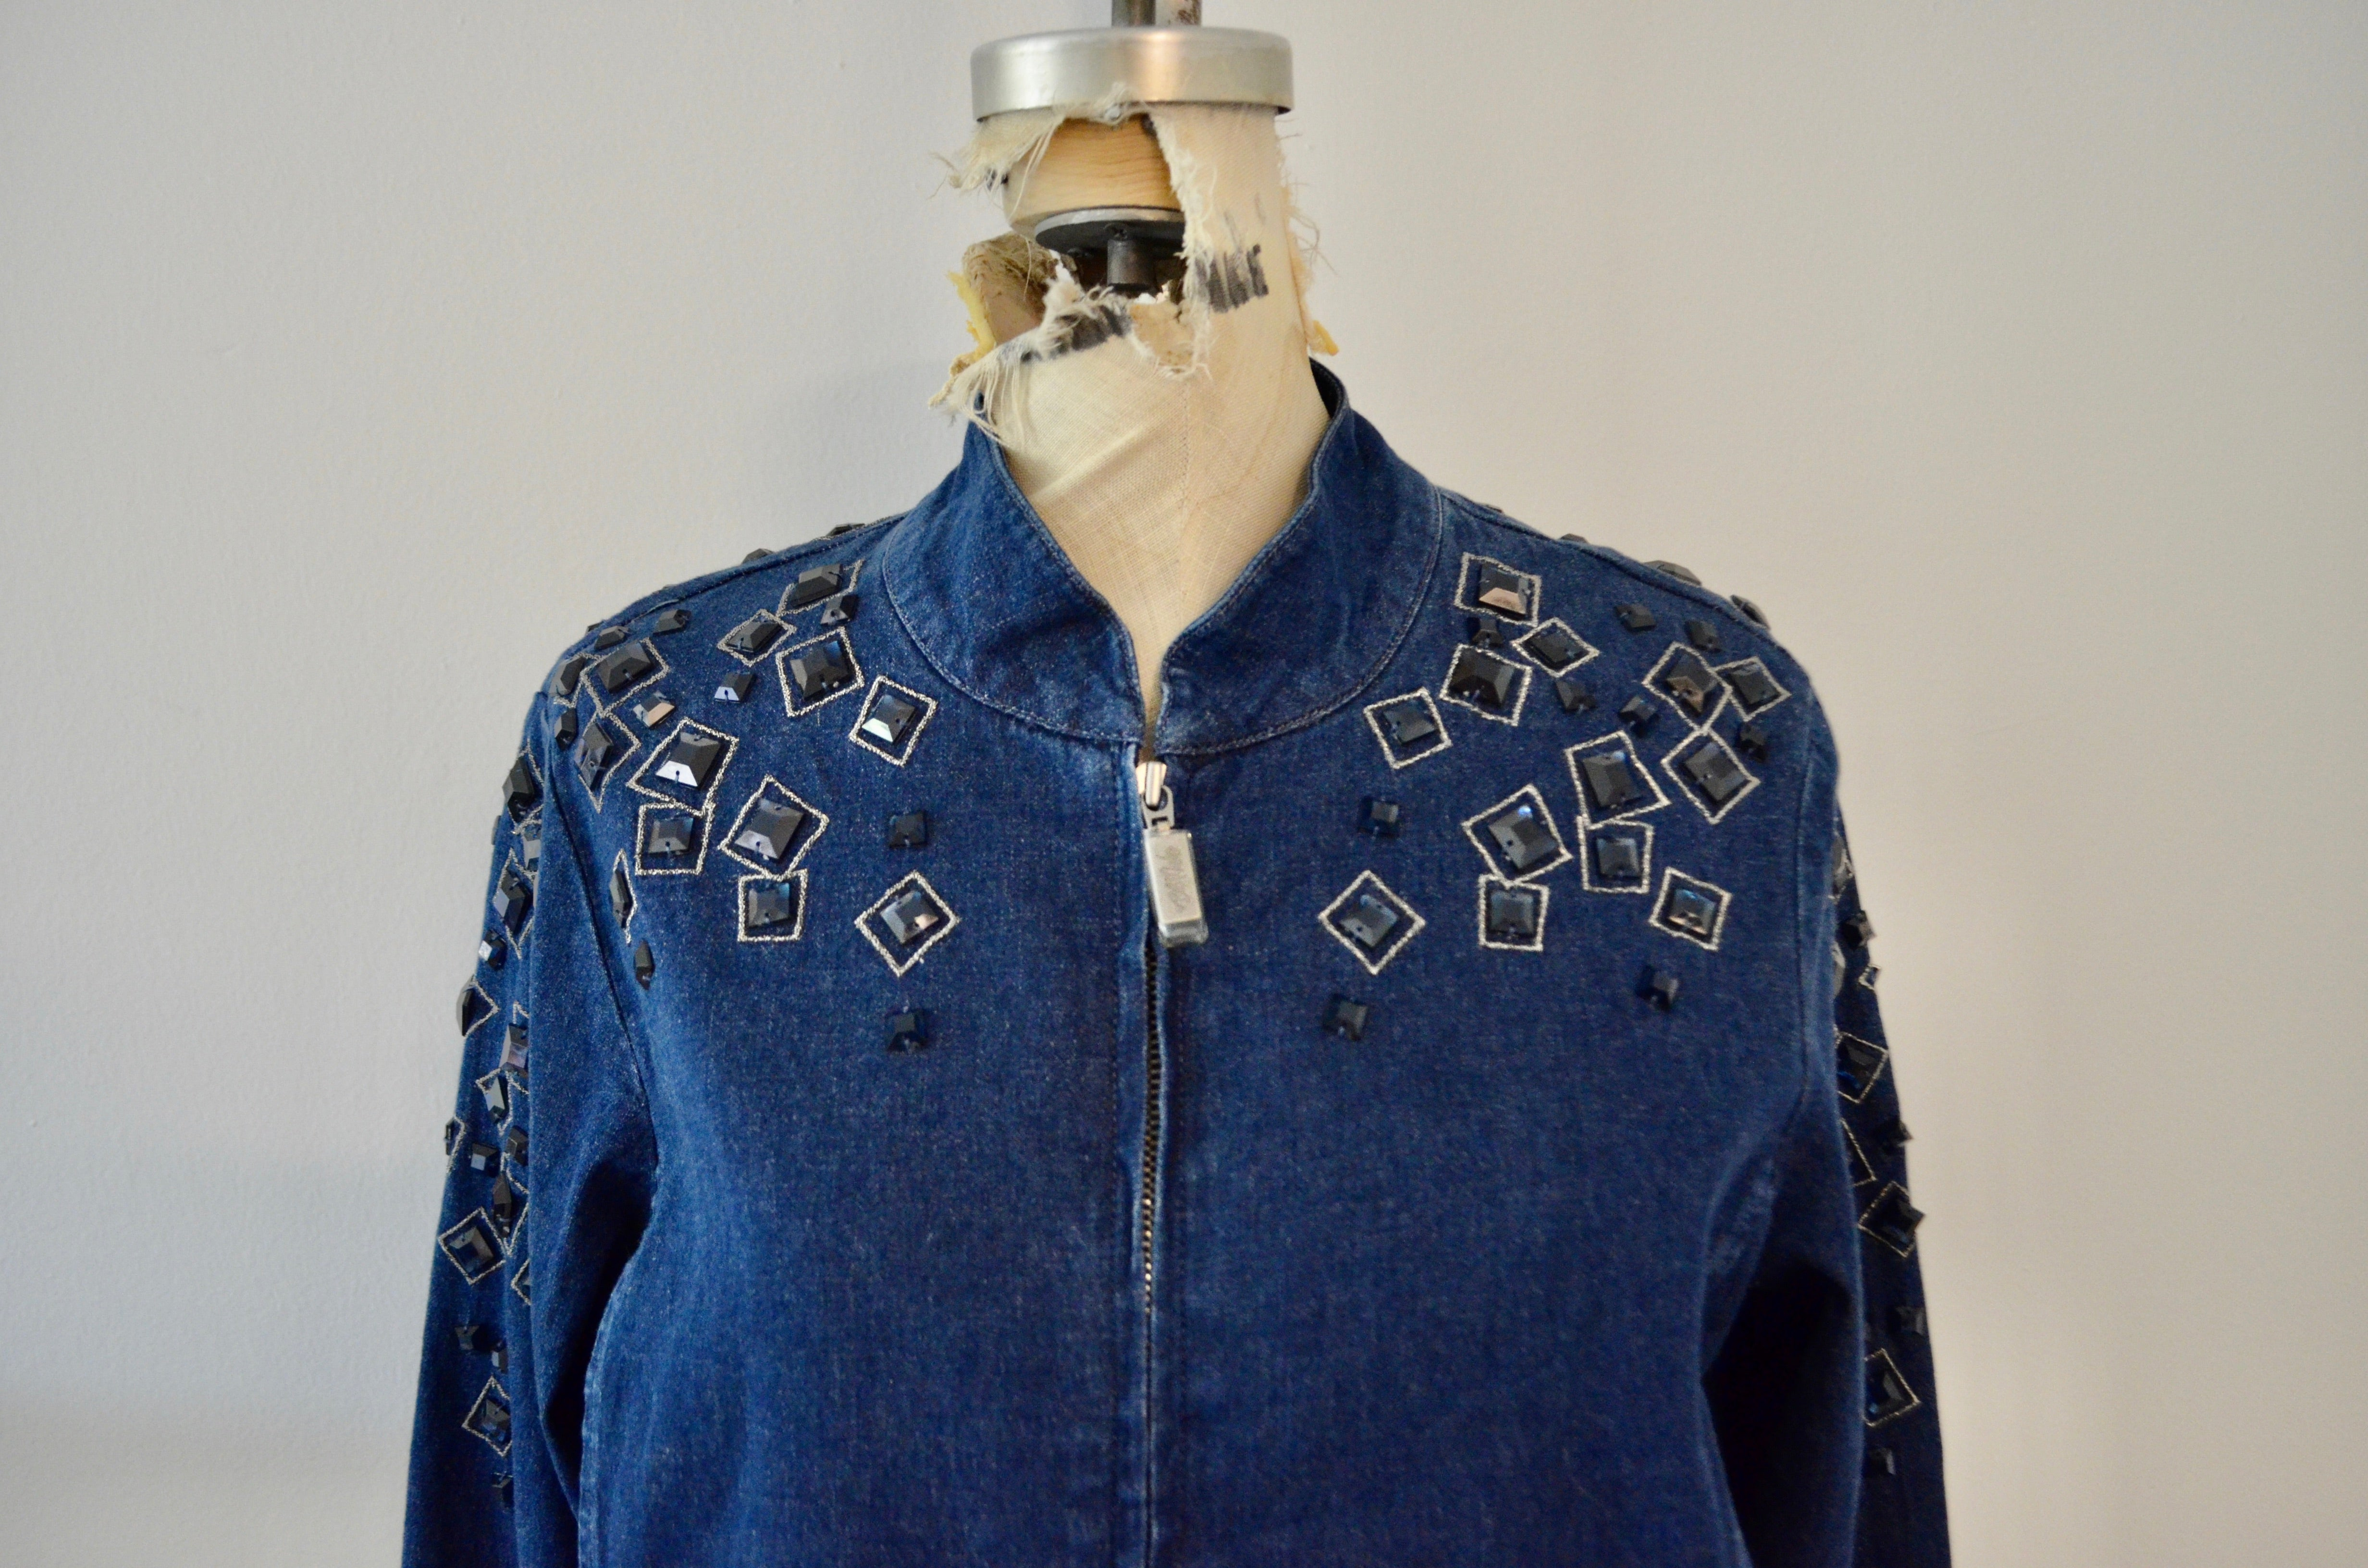 Vintage Bob Mackie Wearable Art Denim Beaded Jewelry Design Jean jacket Runway Spring Trend